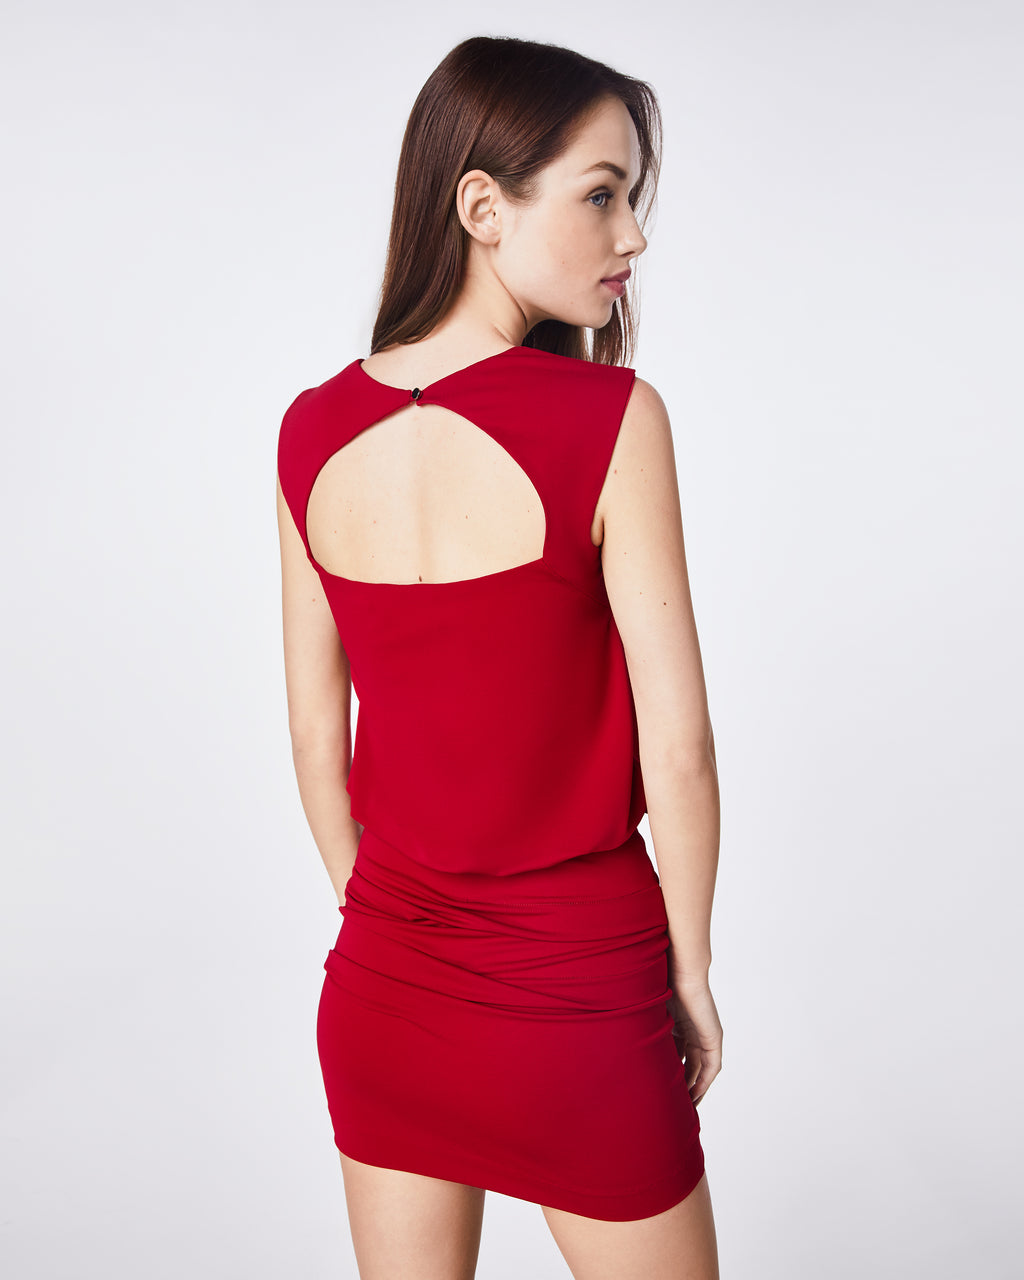 BH10429 - JERSEY SLEEVELESS BLOUSON DRESS - dresses - short - THIS DRESS IS PERFECT FOR ANY OCCASION.